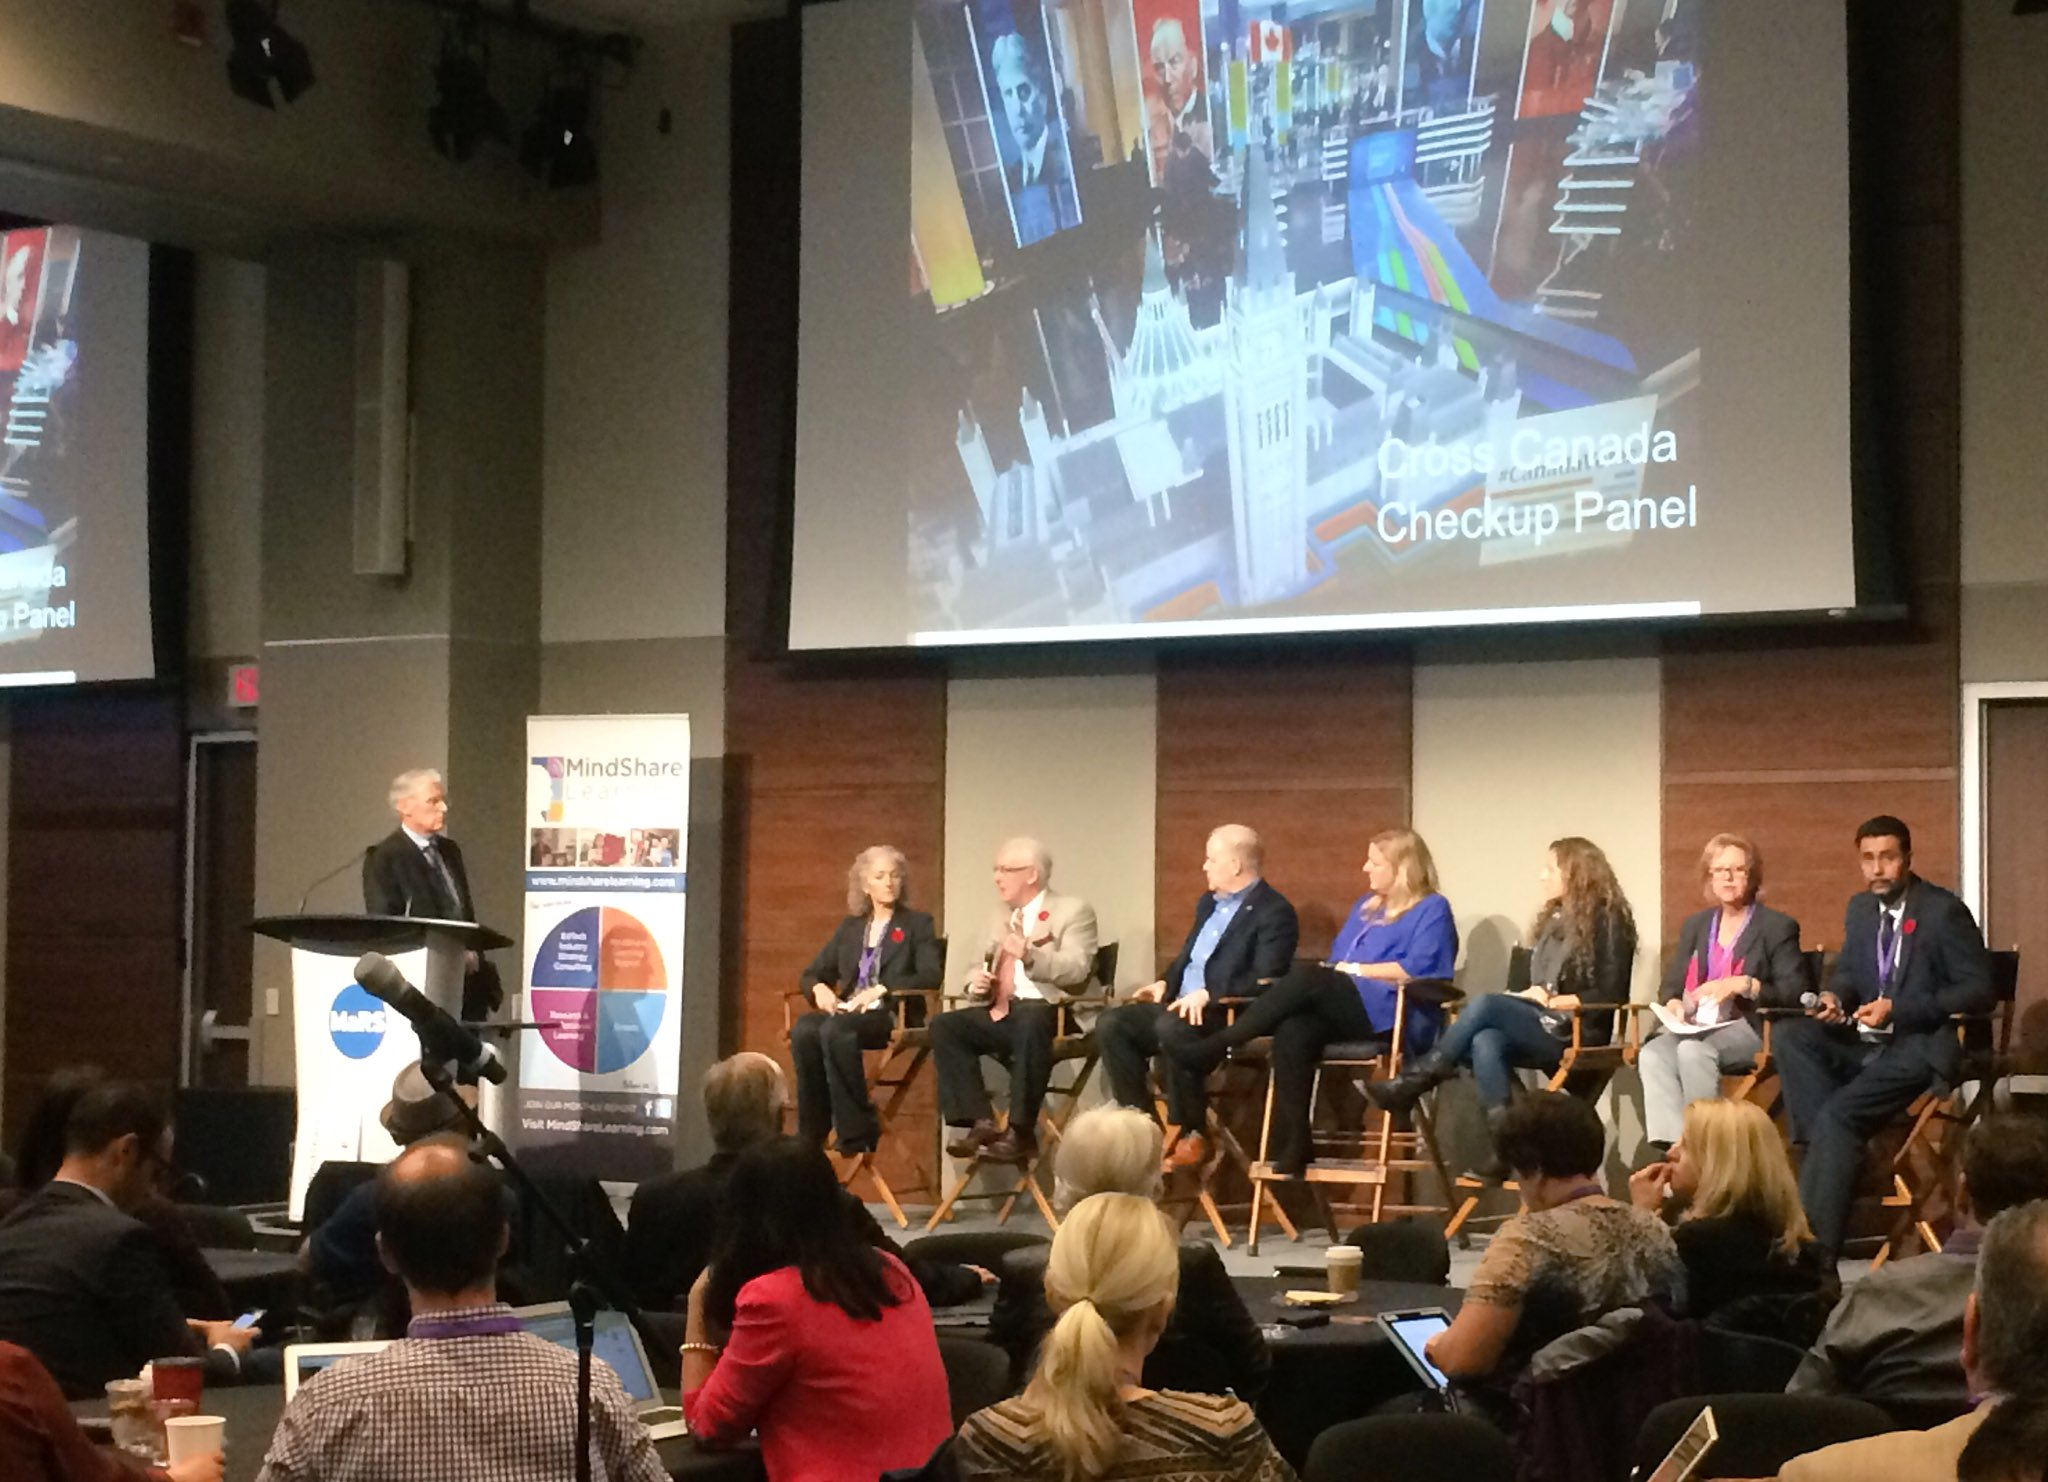 The Cross Canada Checkup Panel providing the current state of #EdTech in Canada #CdnEdTech16 https://t.co/toMAjXrwPm